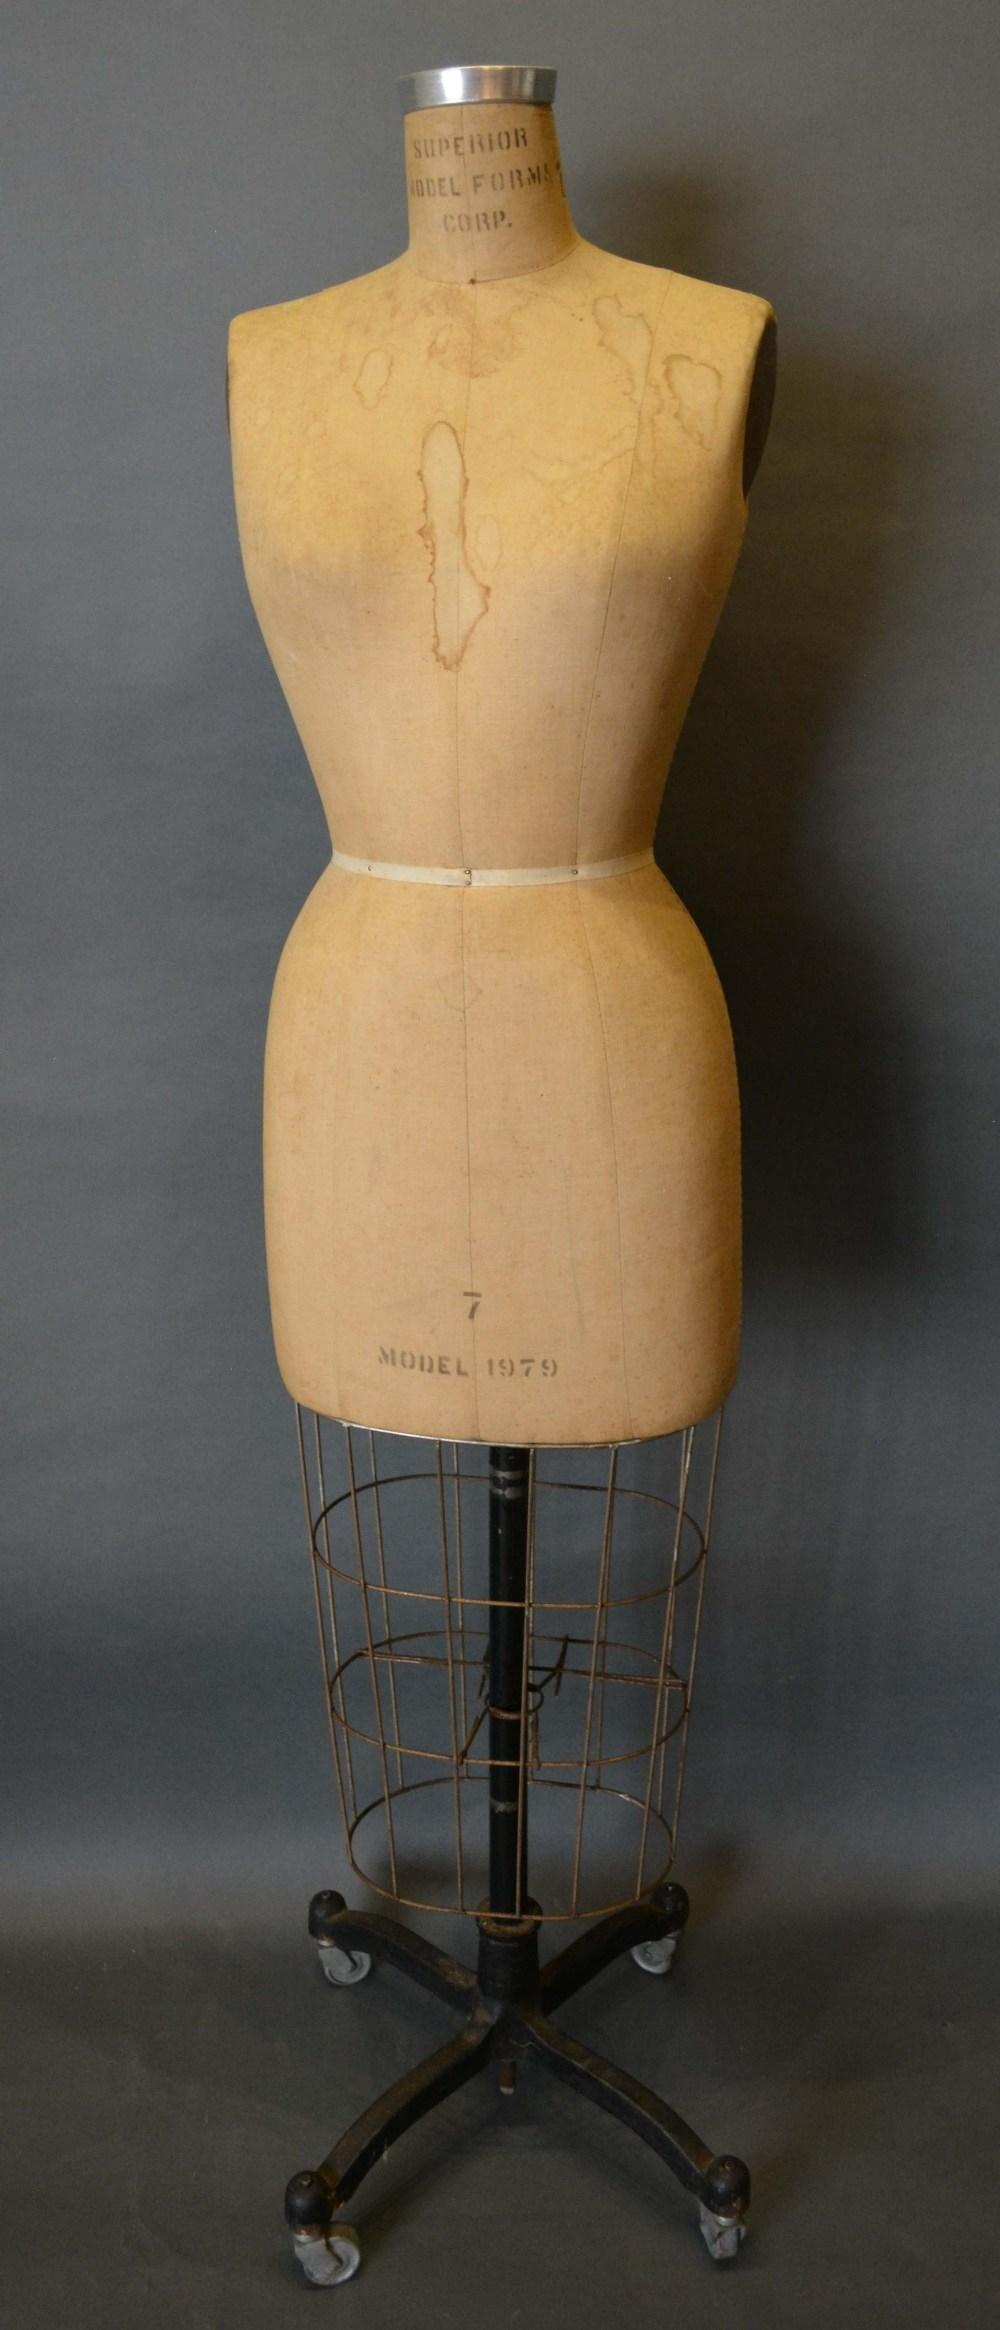 Lot 298 - An Early Tailors Dummy by the Superior Model Forms Corporation and with wrought iron stand, 145cm